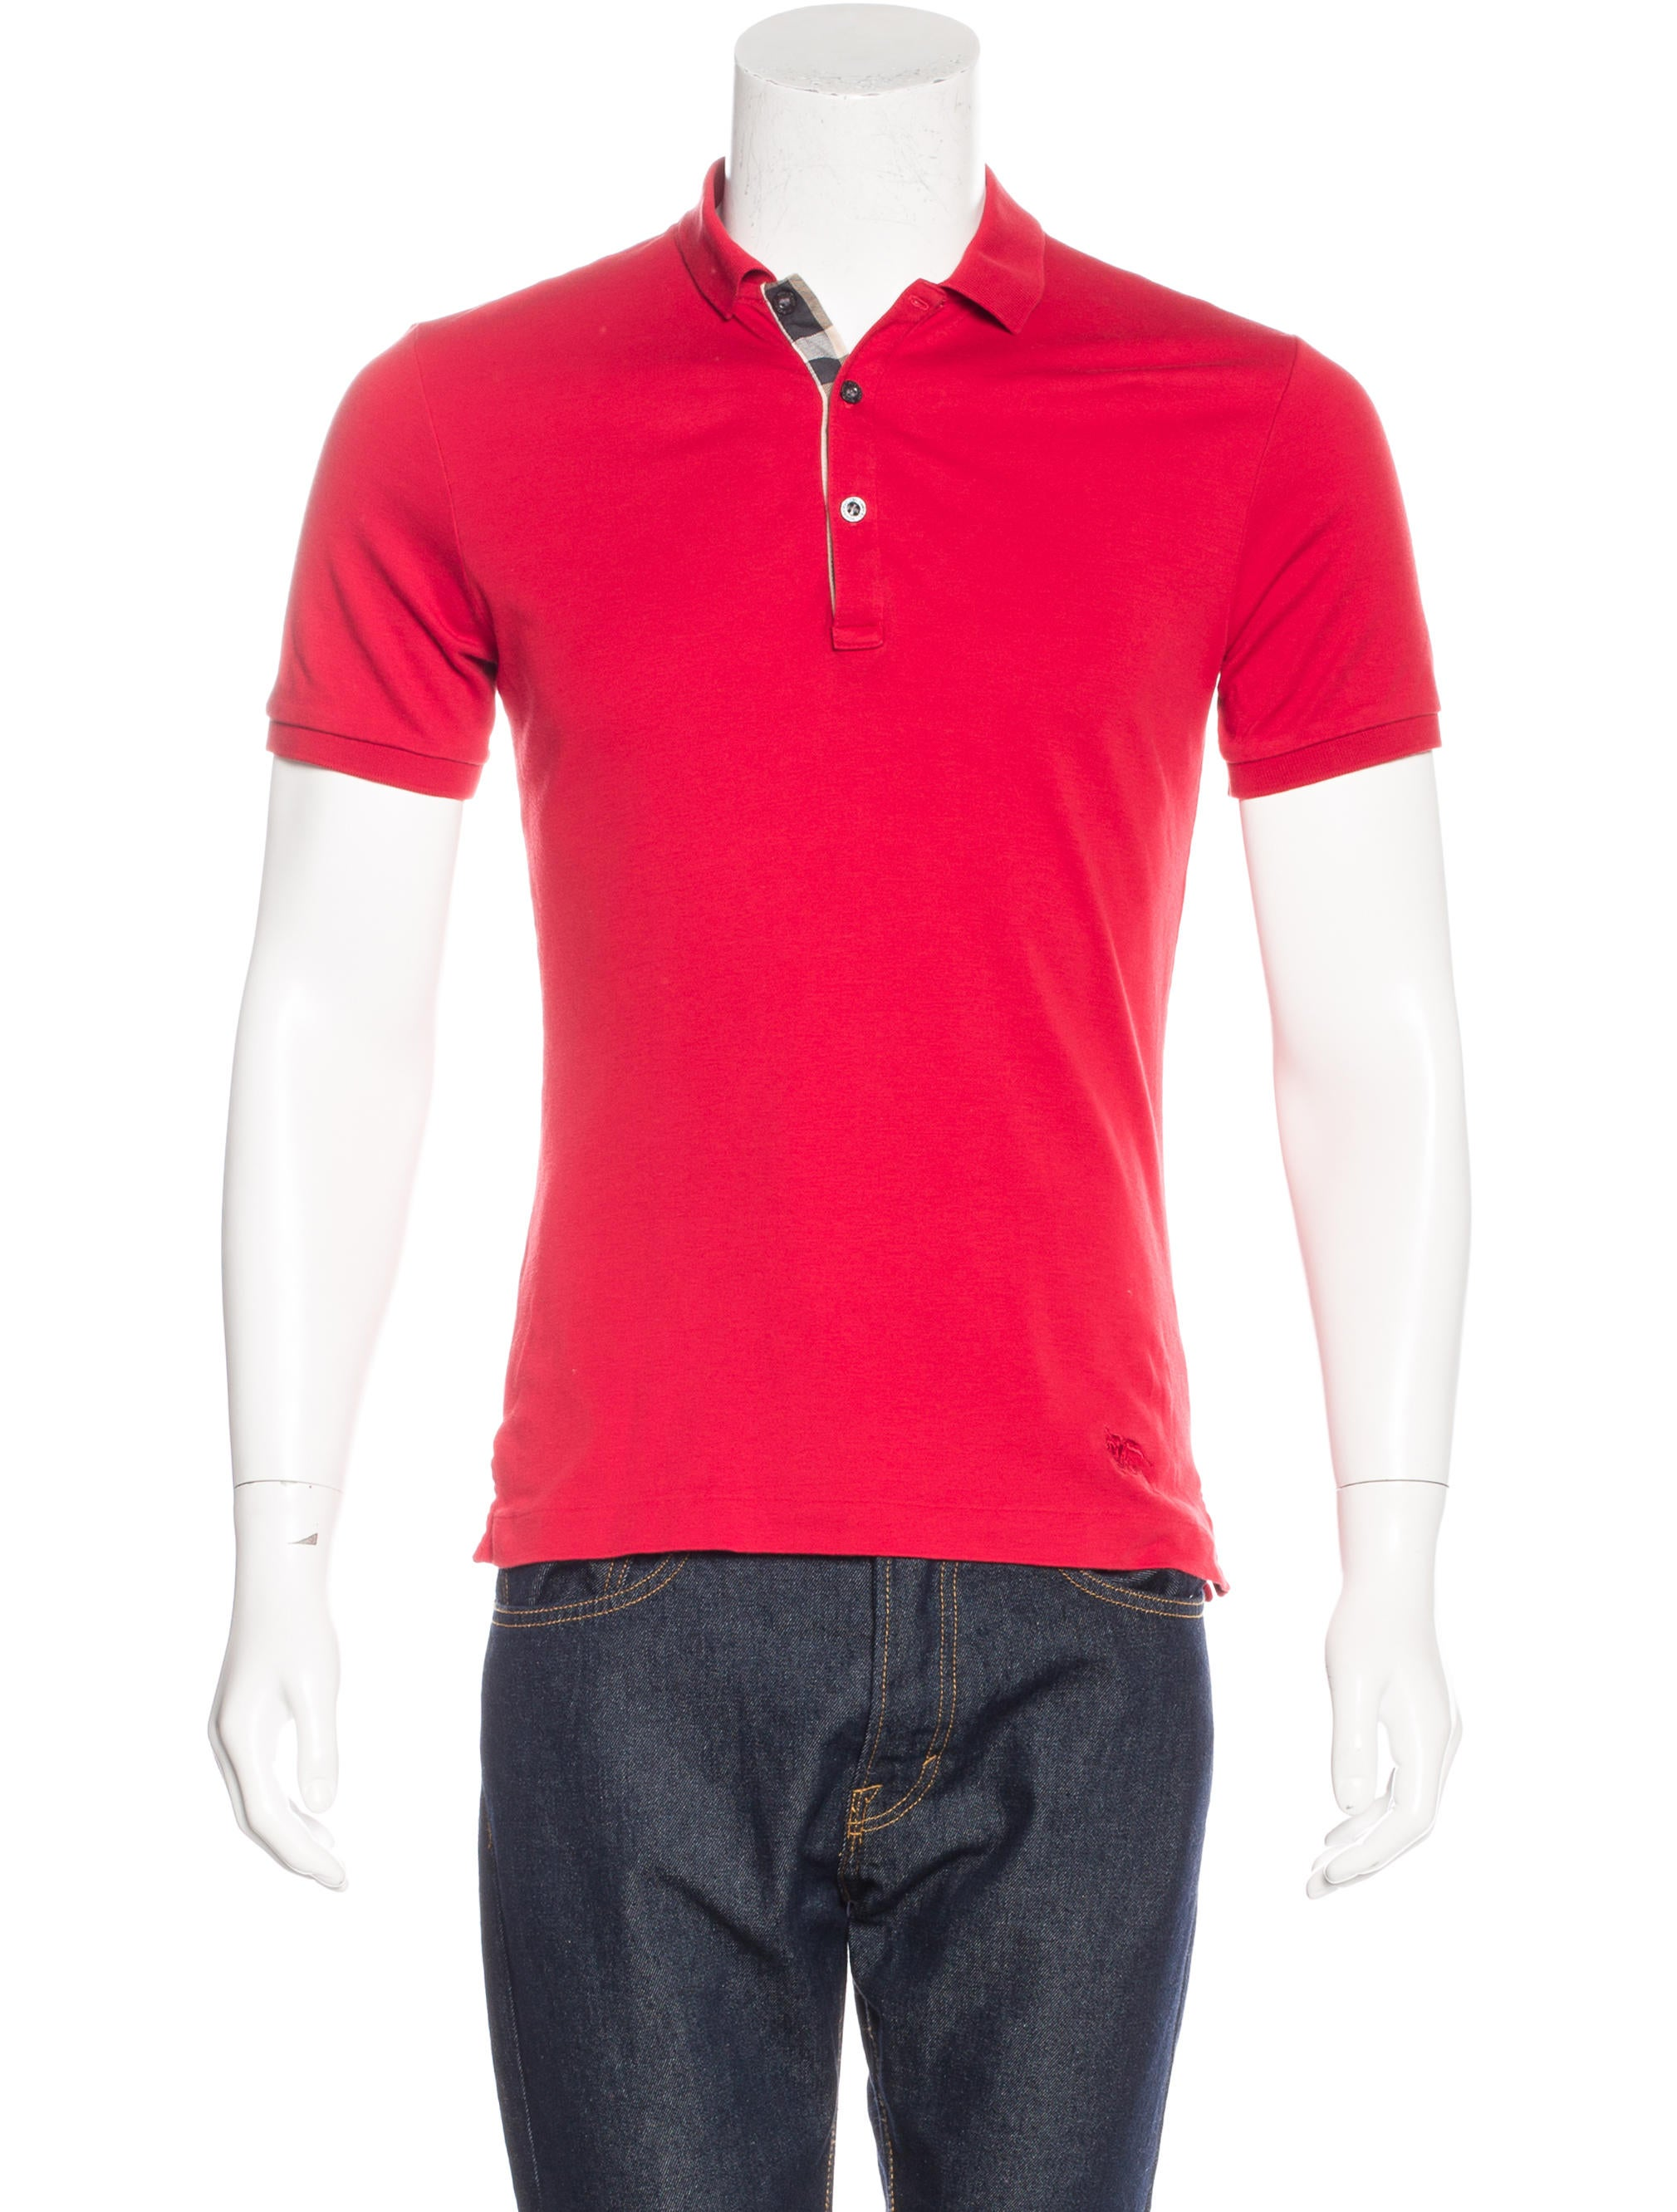 Burberry Brit Jersey Knit Polo Shirt Clothing Bbr26791